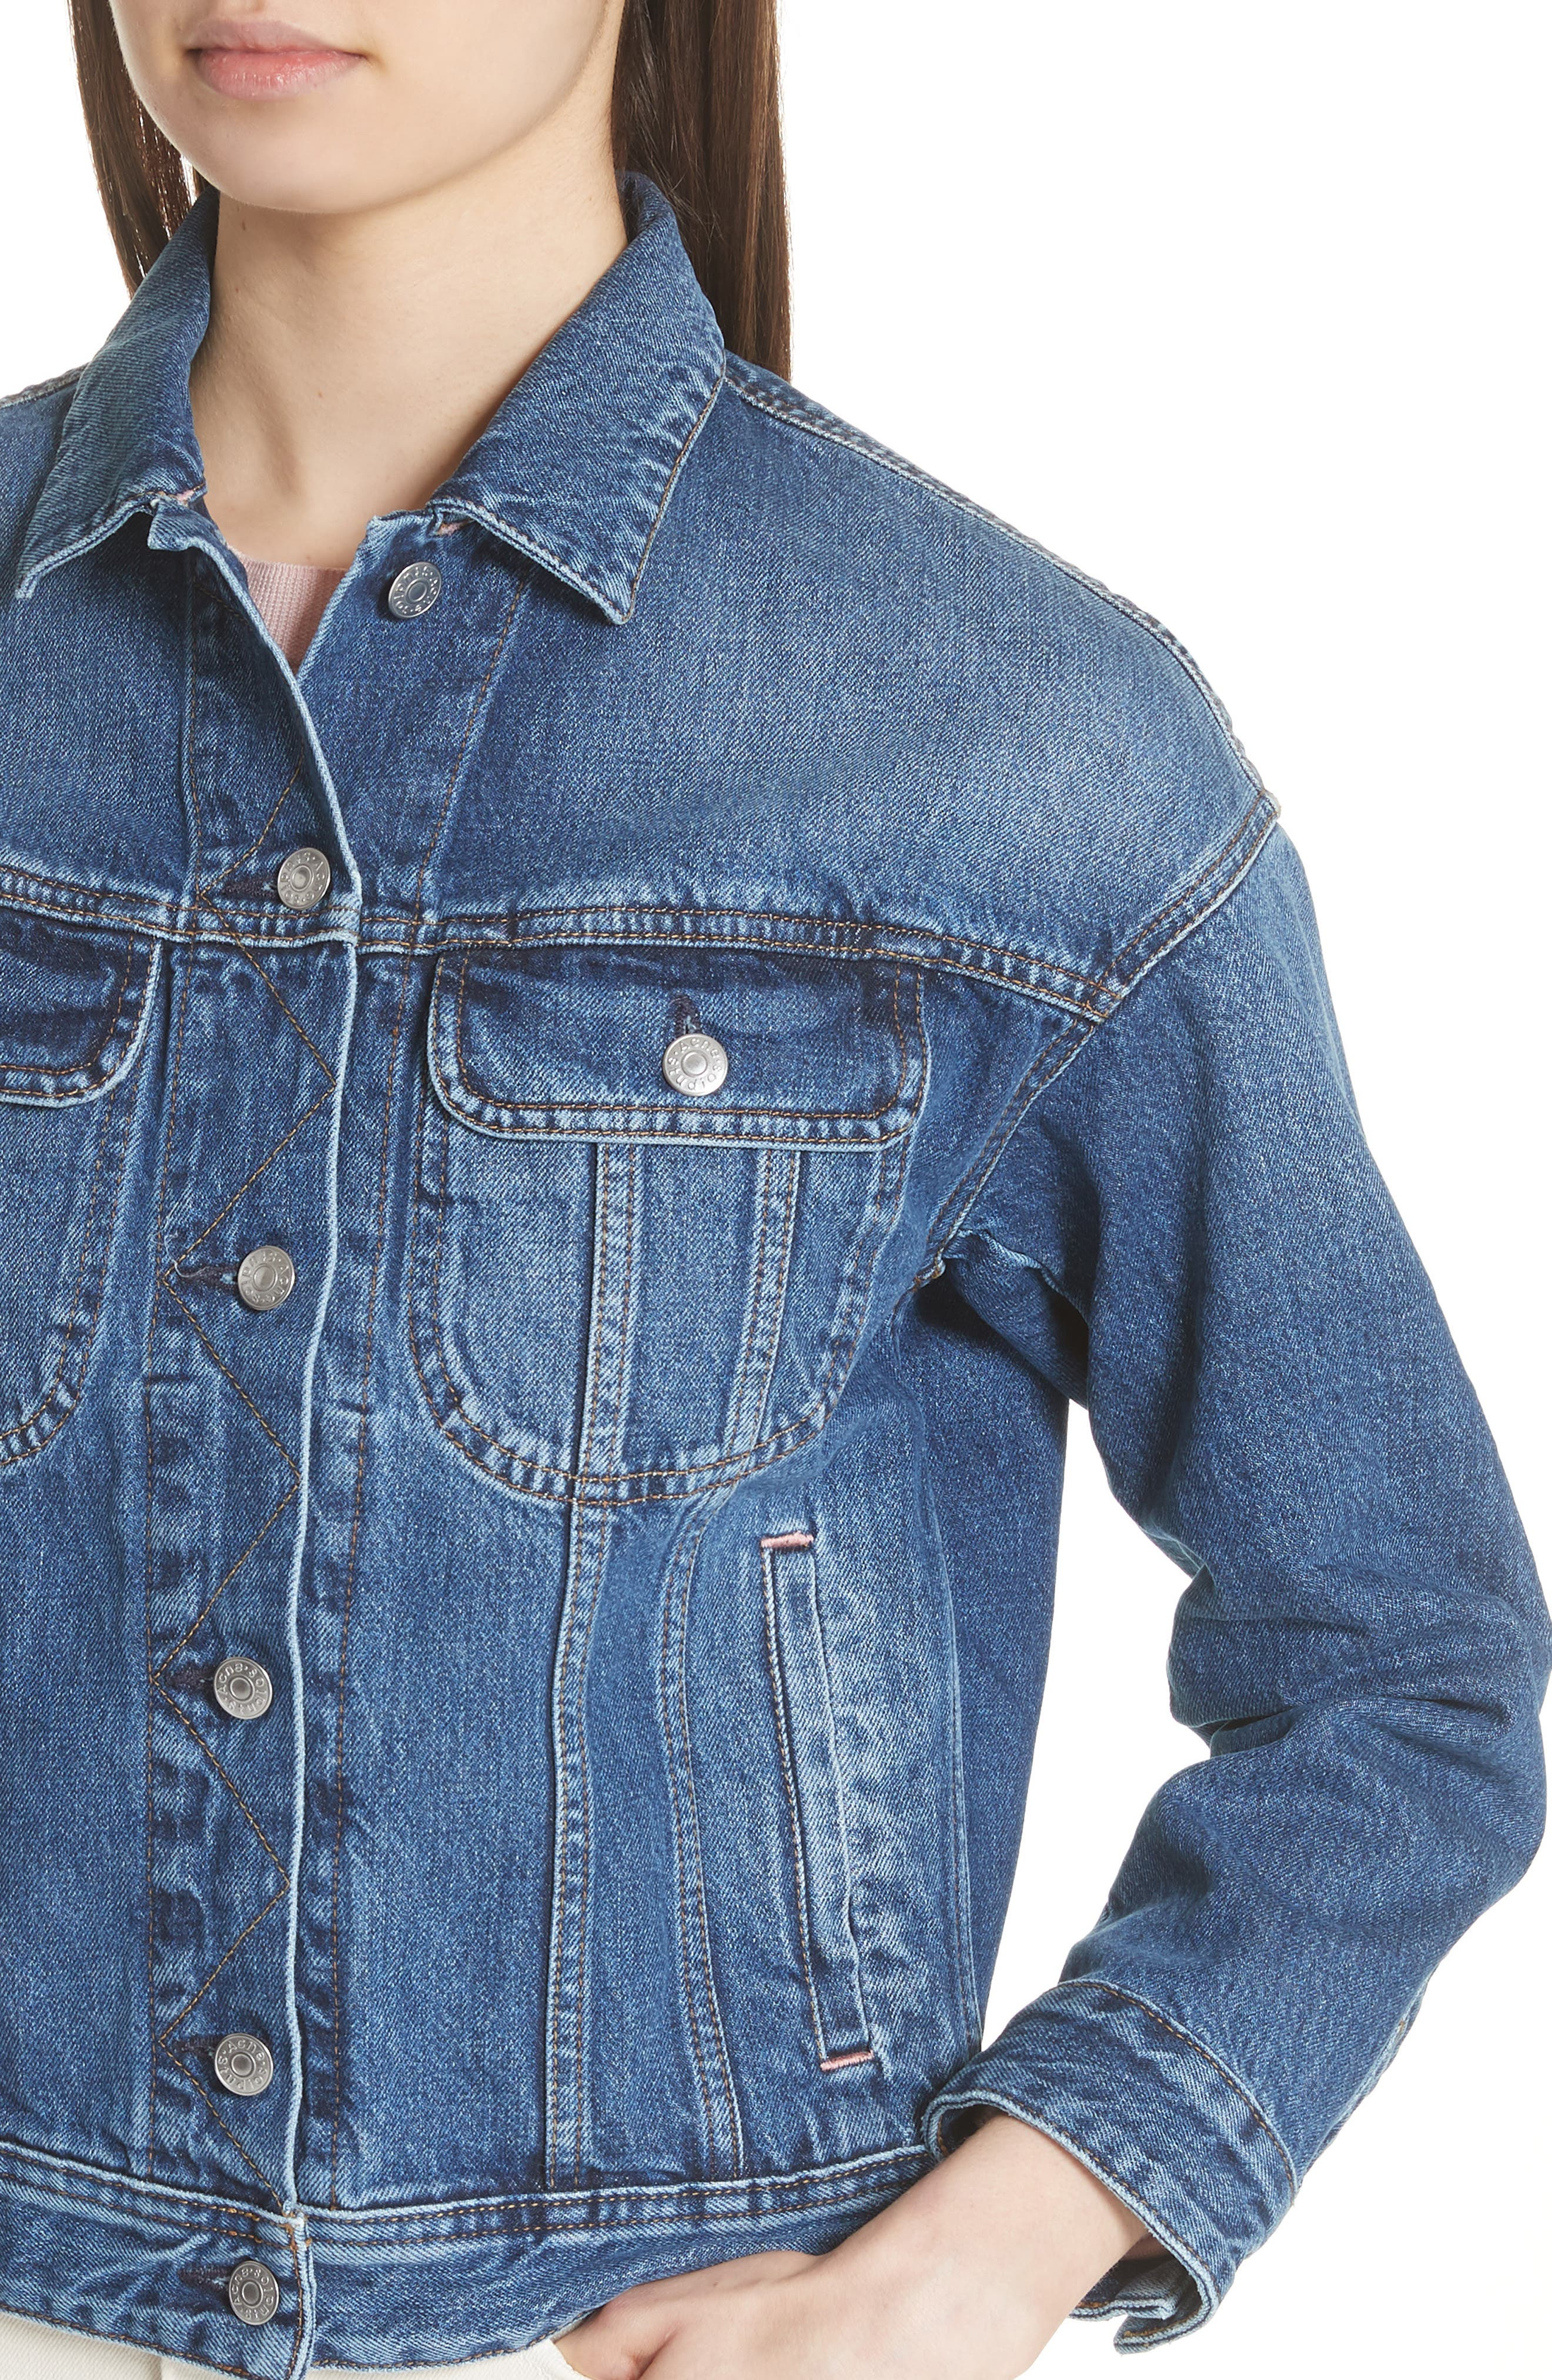 Lamp Denim Jacket,                             Alternate thumbnail 4, color,                             400